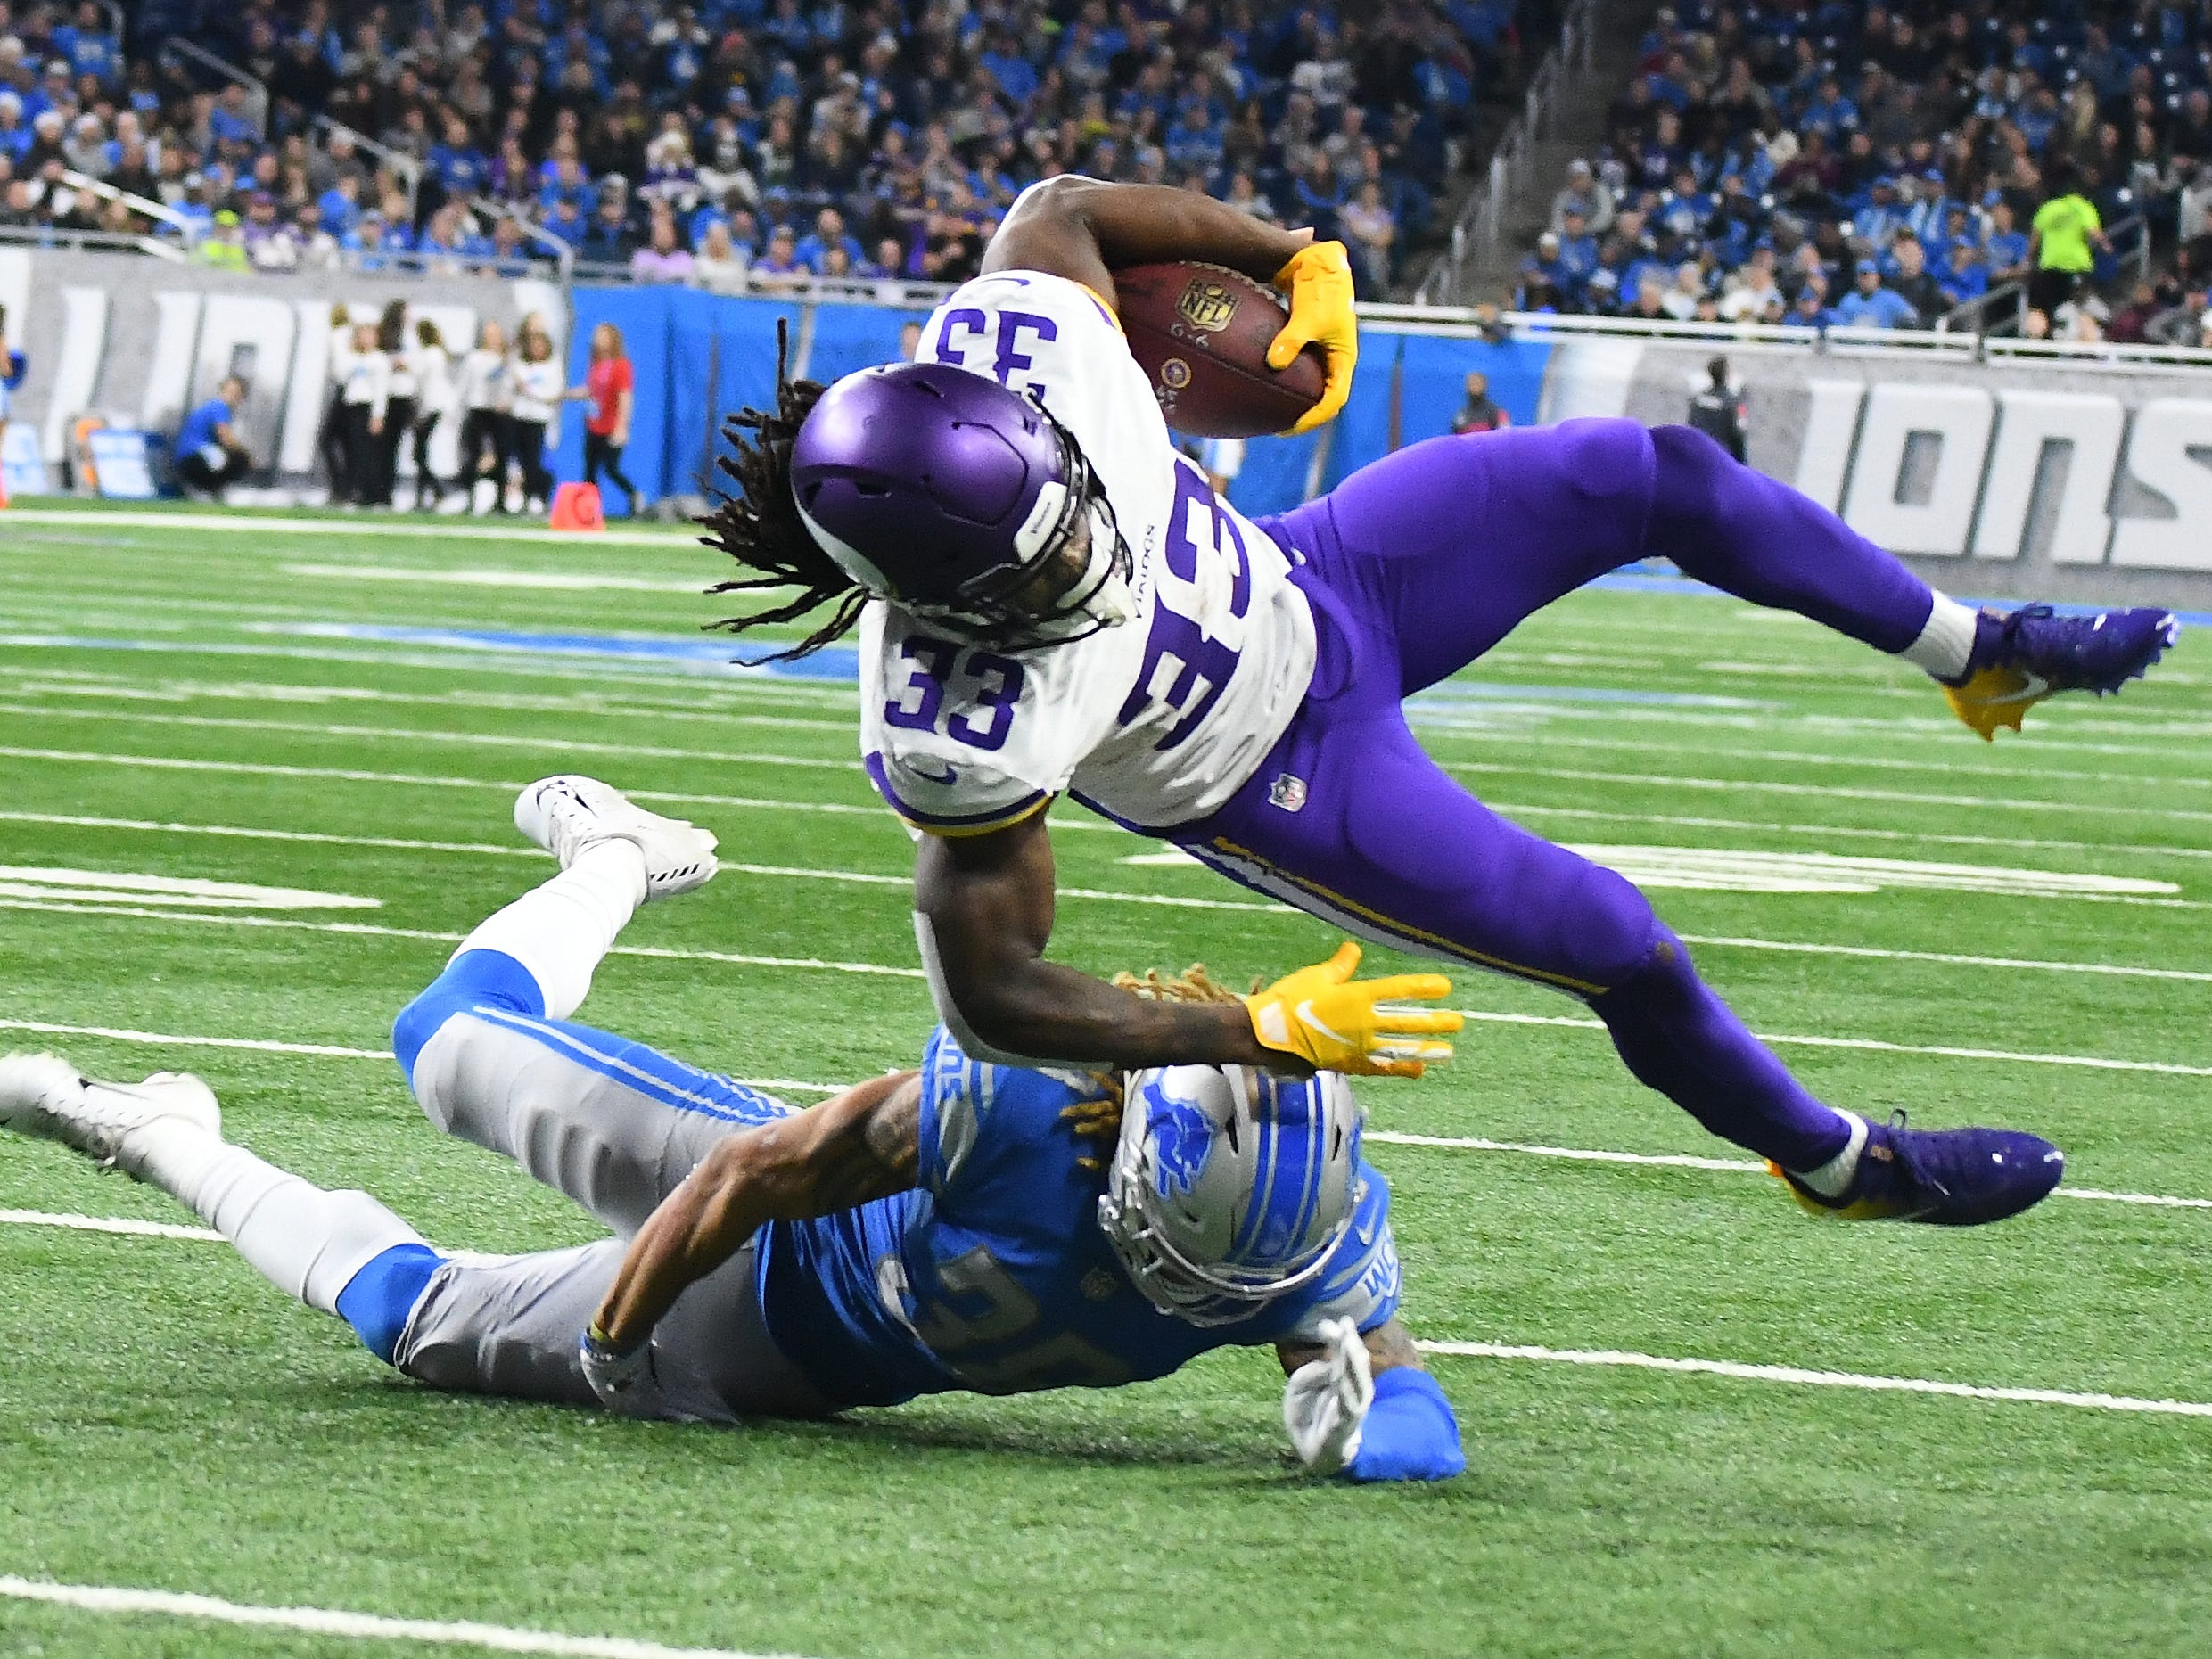 Vikings' Dalvin Cook is upended by Lions' Mike Ford in the second quarter.